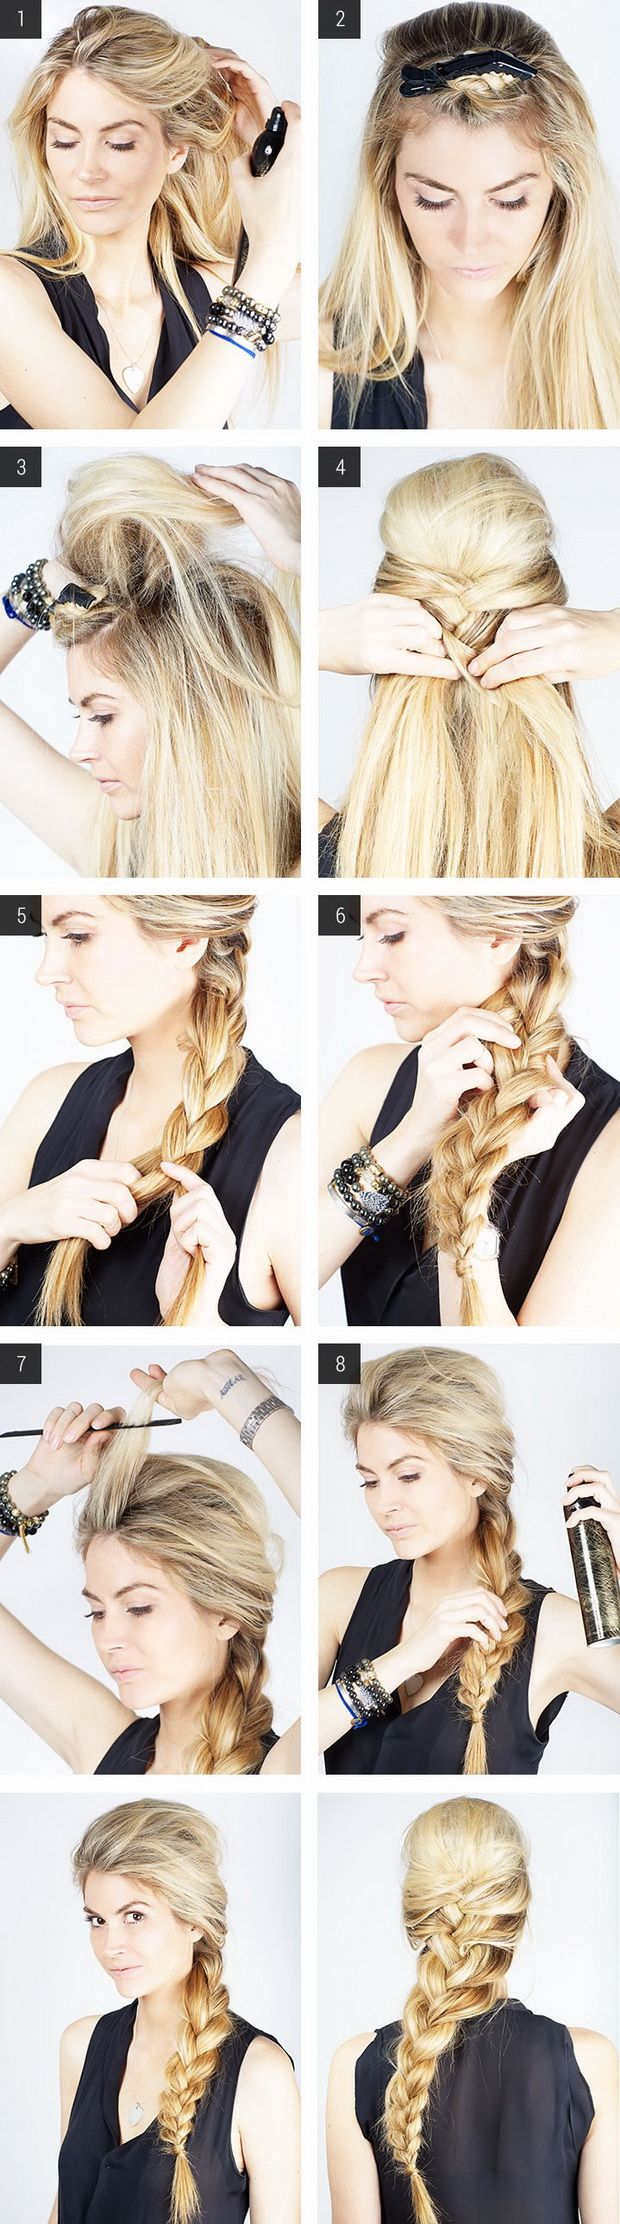 Messy French braid with poof. If only mine would actually look like that.